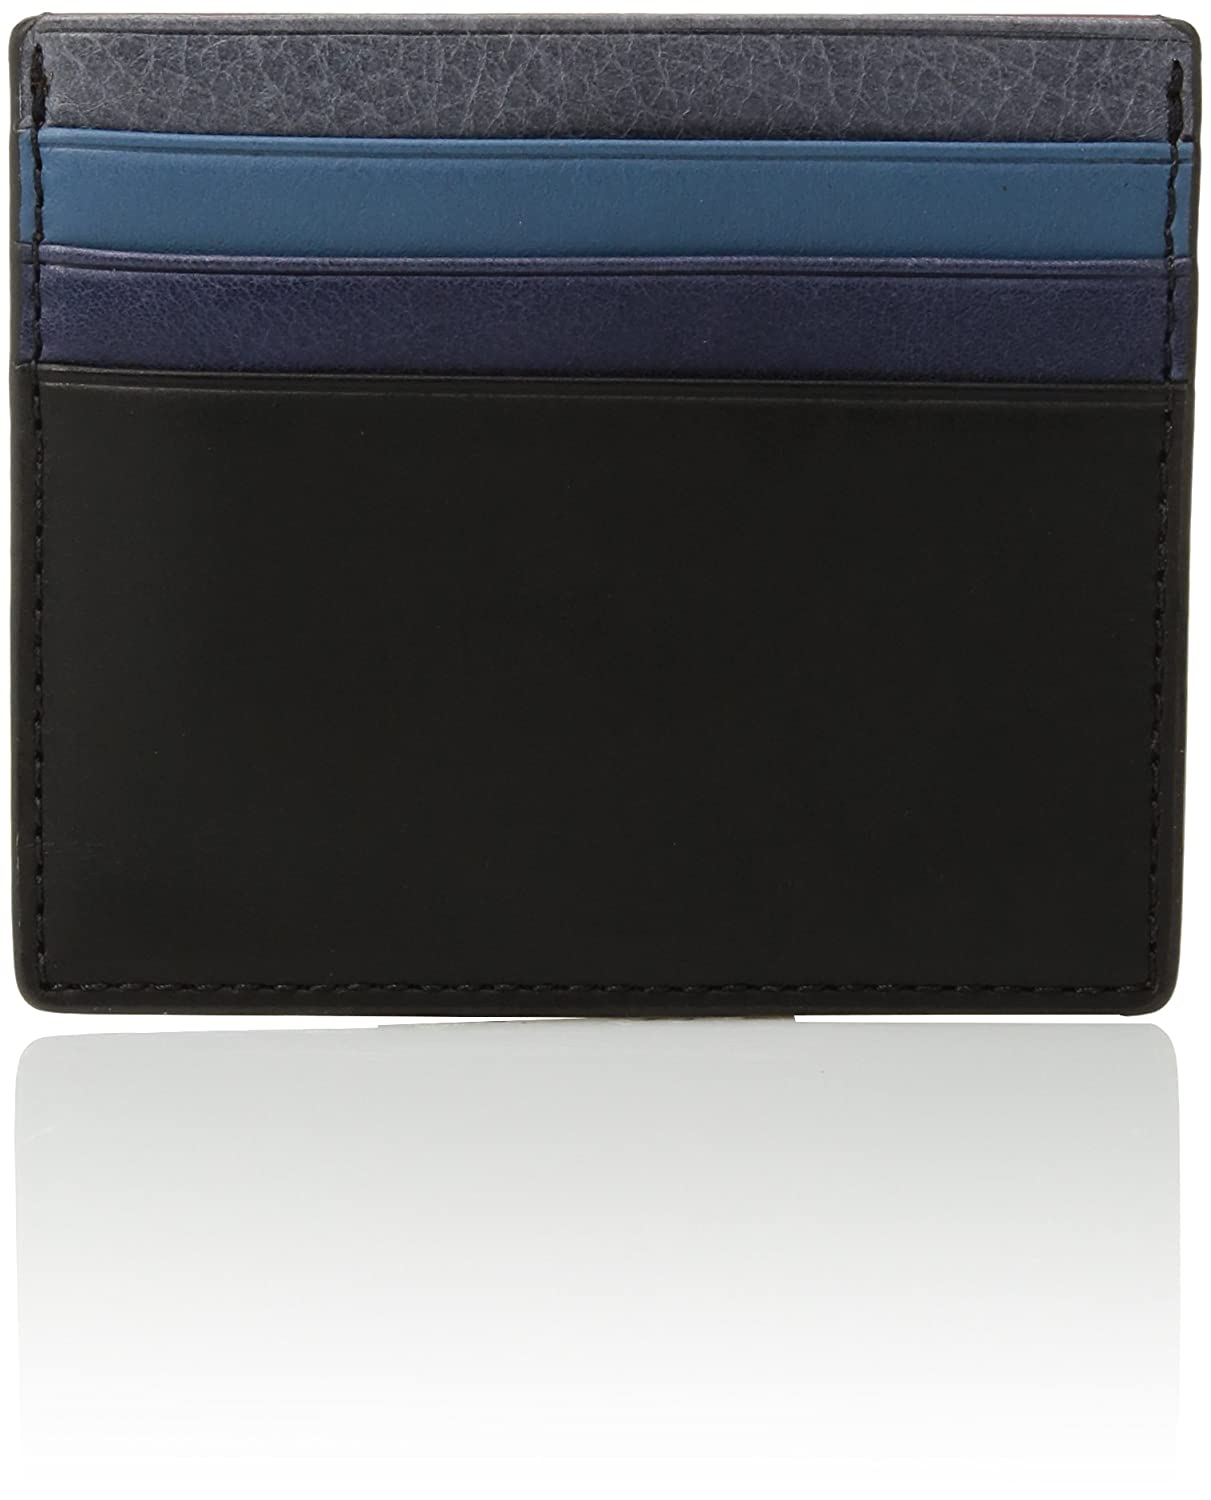 Amazon.com: Fossil Ben Card Case Accessory: Clothing